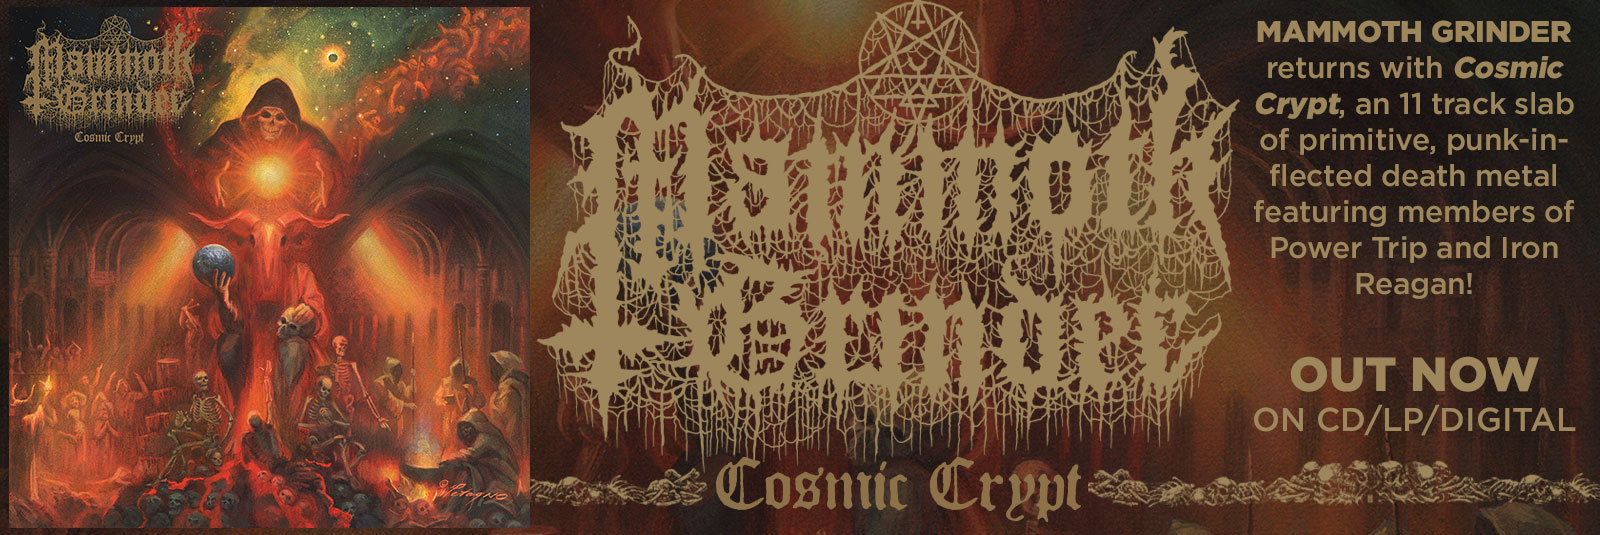 mammoth-grinder-cosmic-crypt